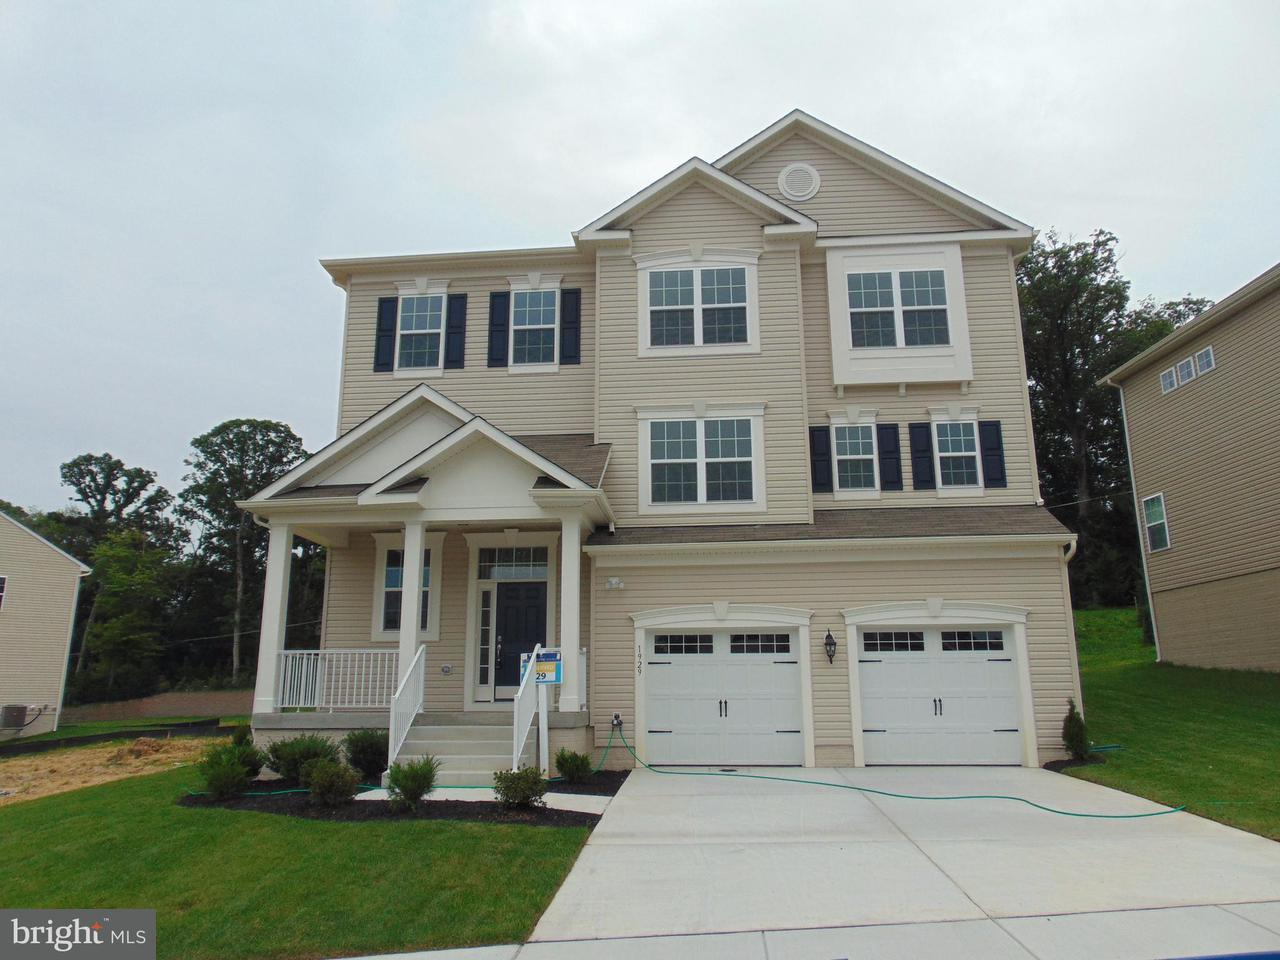 Single Family Home for Sale at 1944 RUSHLEY Road 1944 RUSHLEY Road Parkville, Maryland 21234 United States